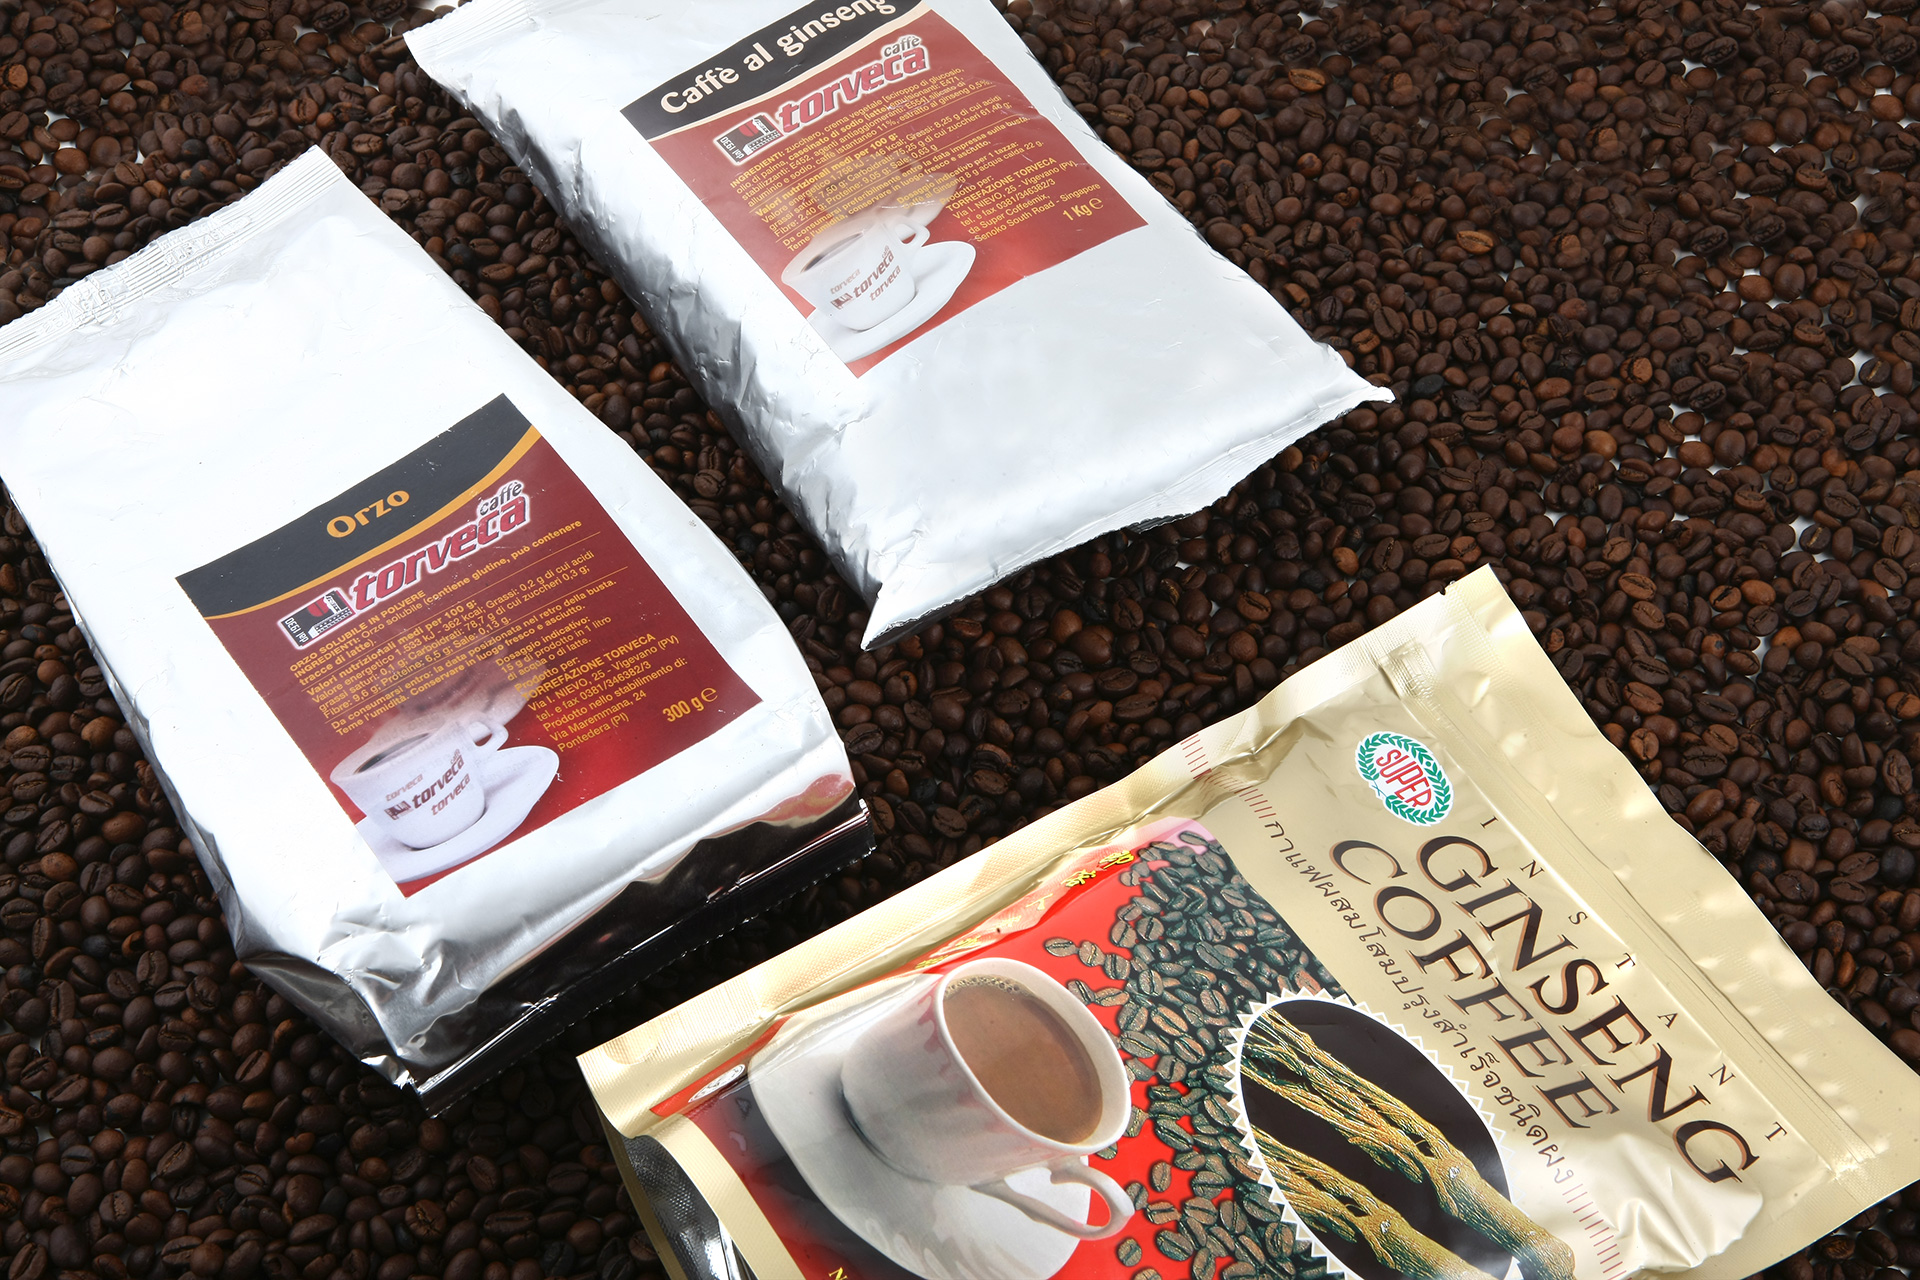 Soluble ginseng, barley coffee pods and soluble barley coffee